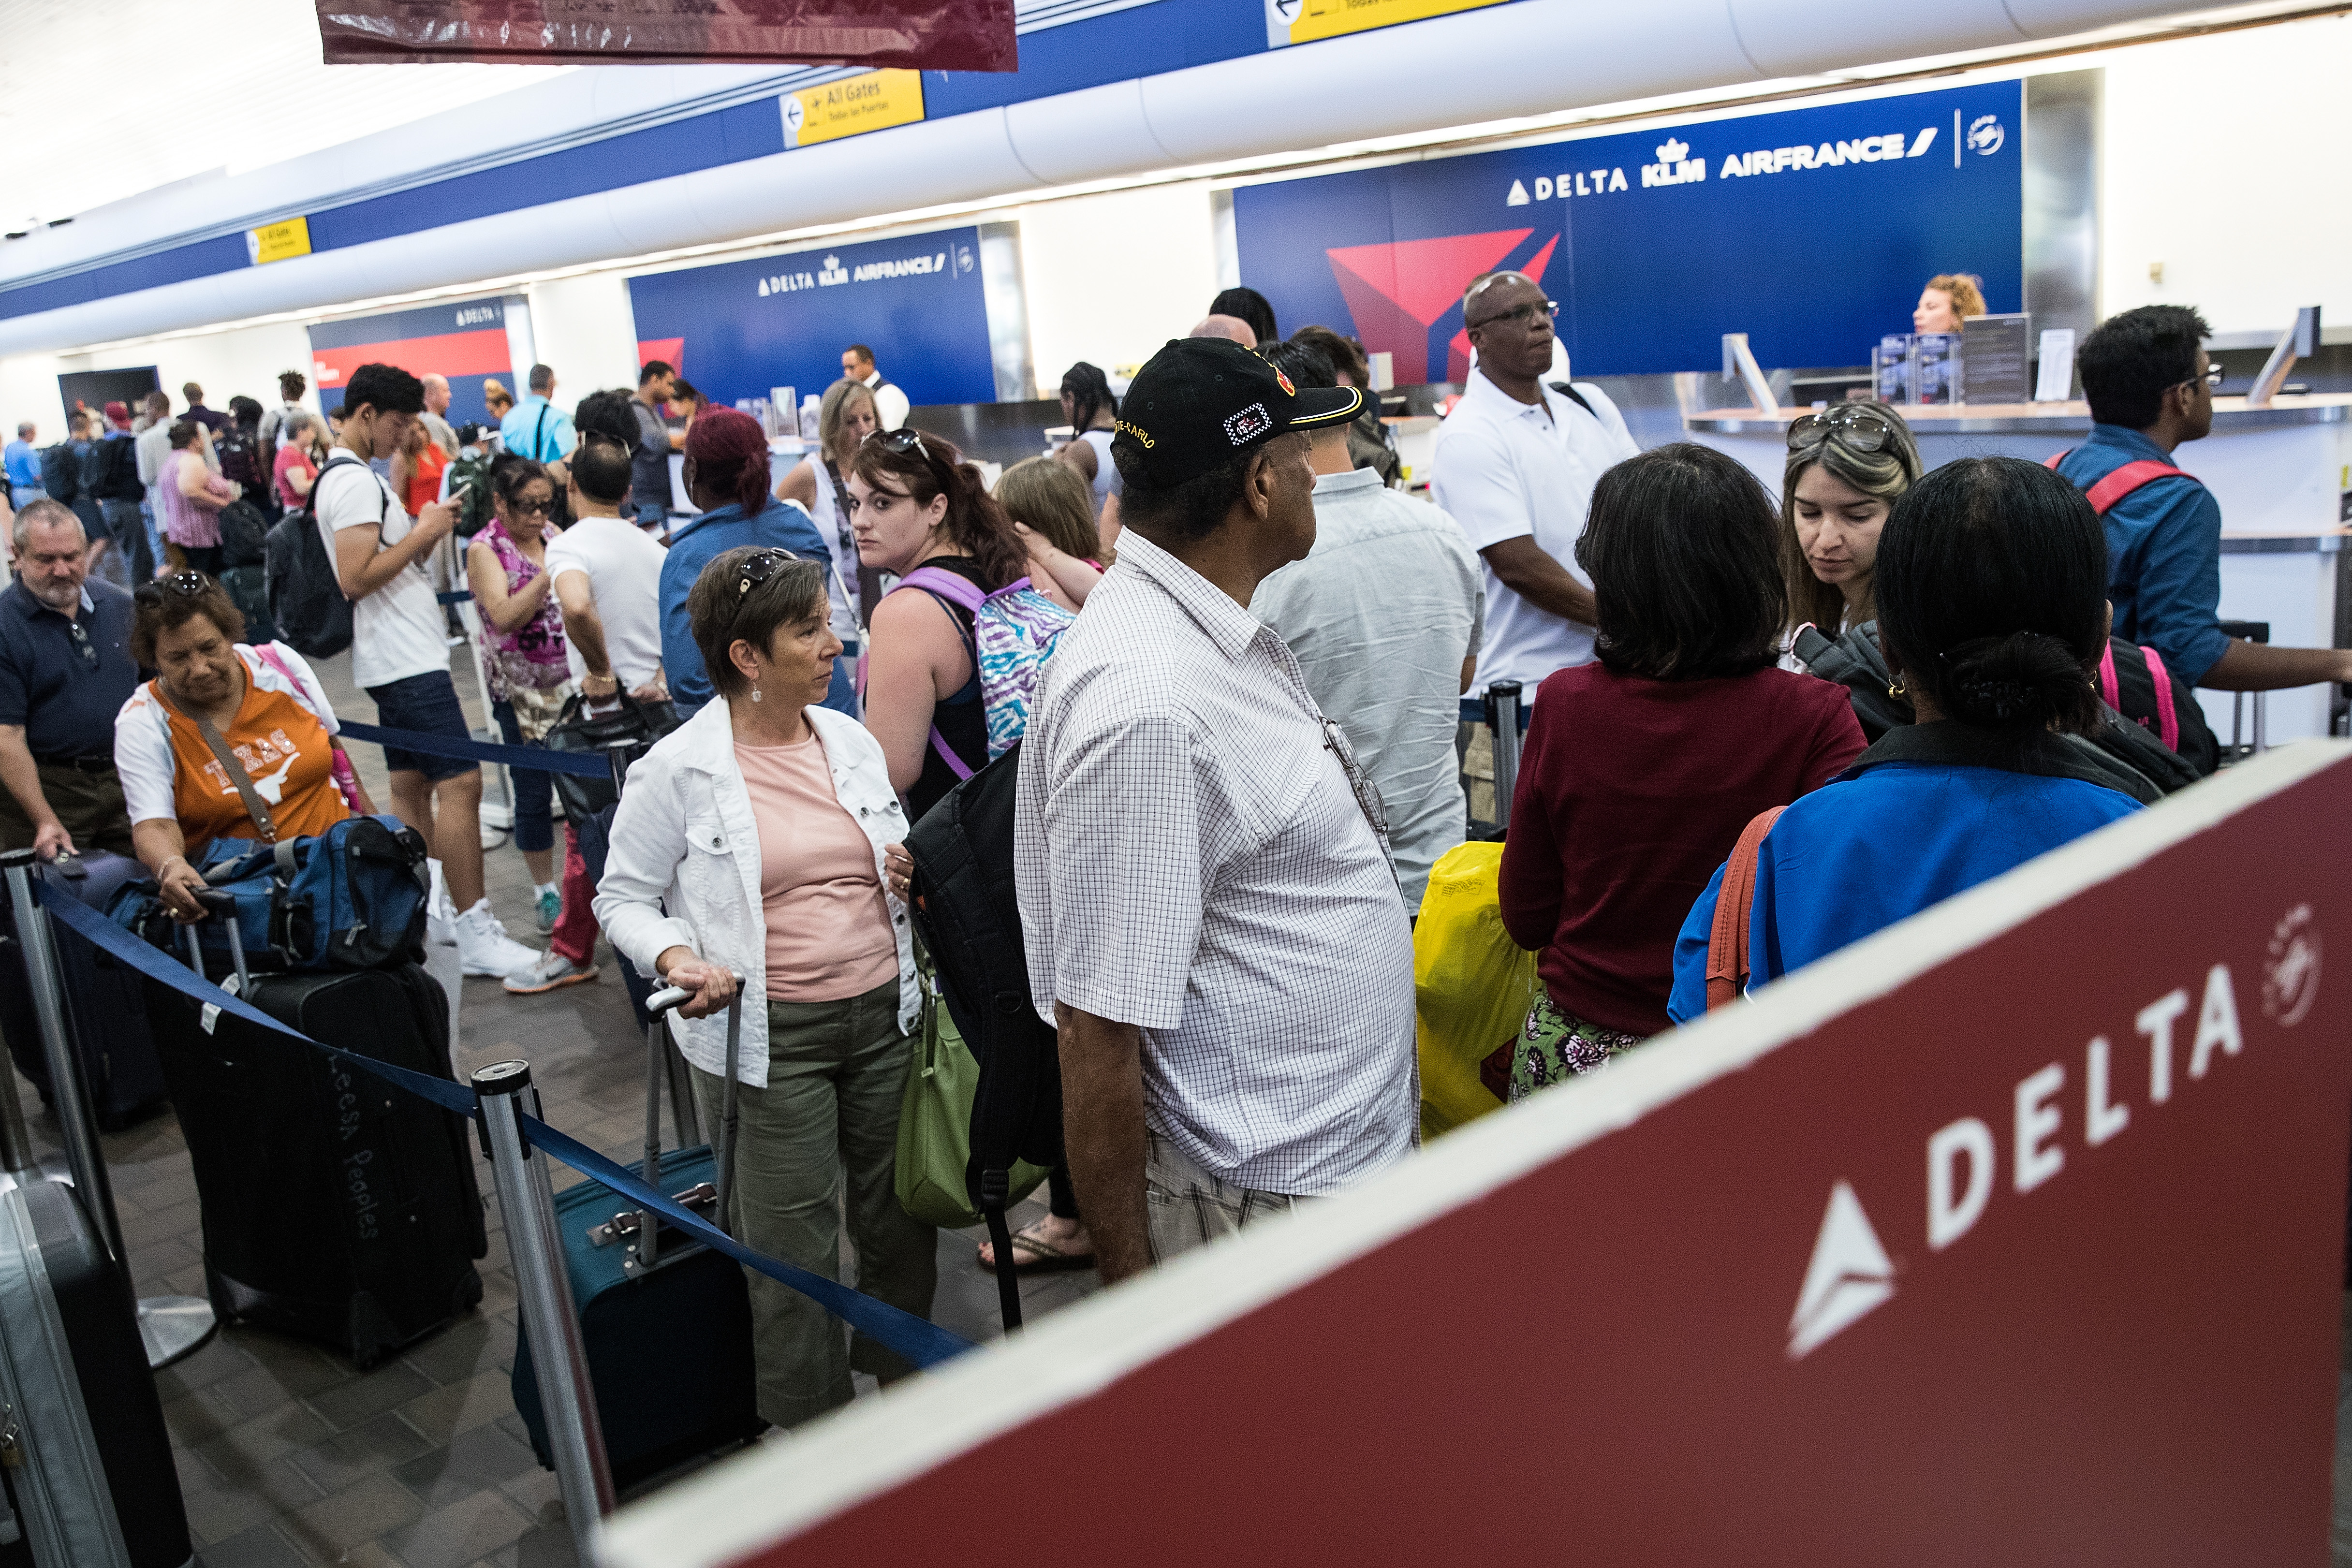 Travelers wait in line at the Delta check-in counter at LaGuardia Airport , August 8, 2016 in the Queens borough of New York City. Delta flights around the globe were grounded and delayed on Monday morning due to a system outage.